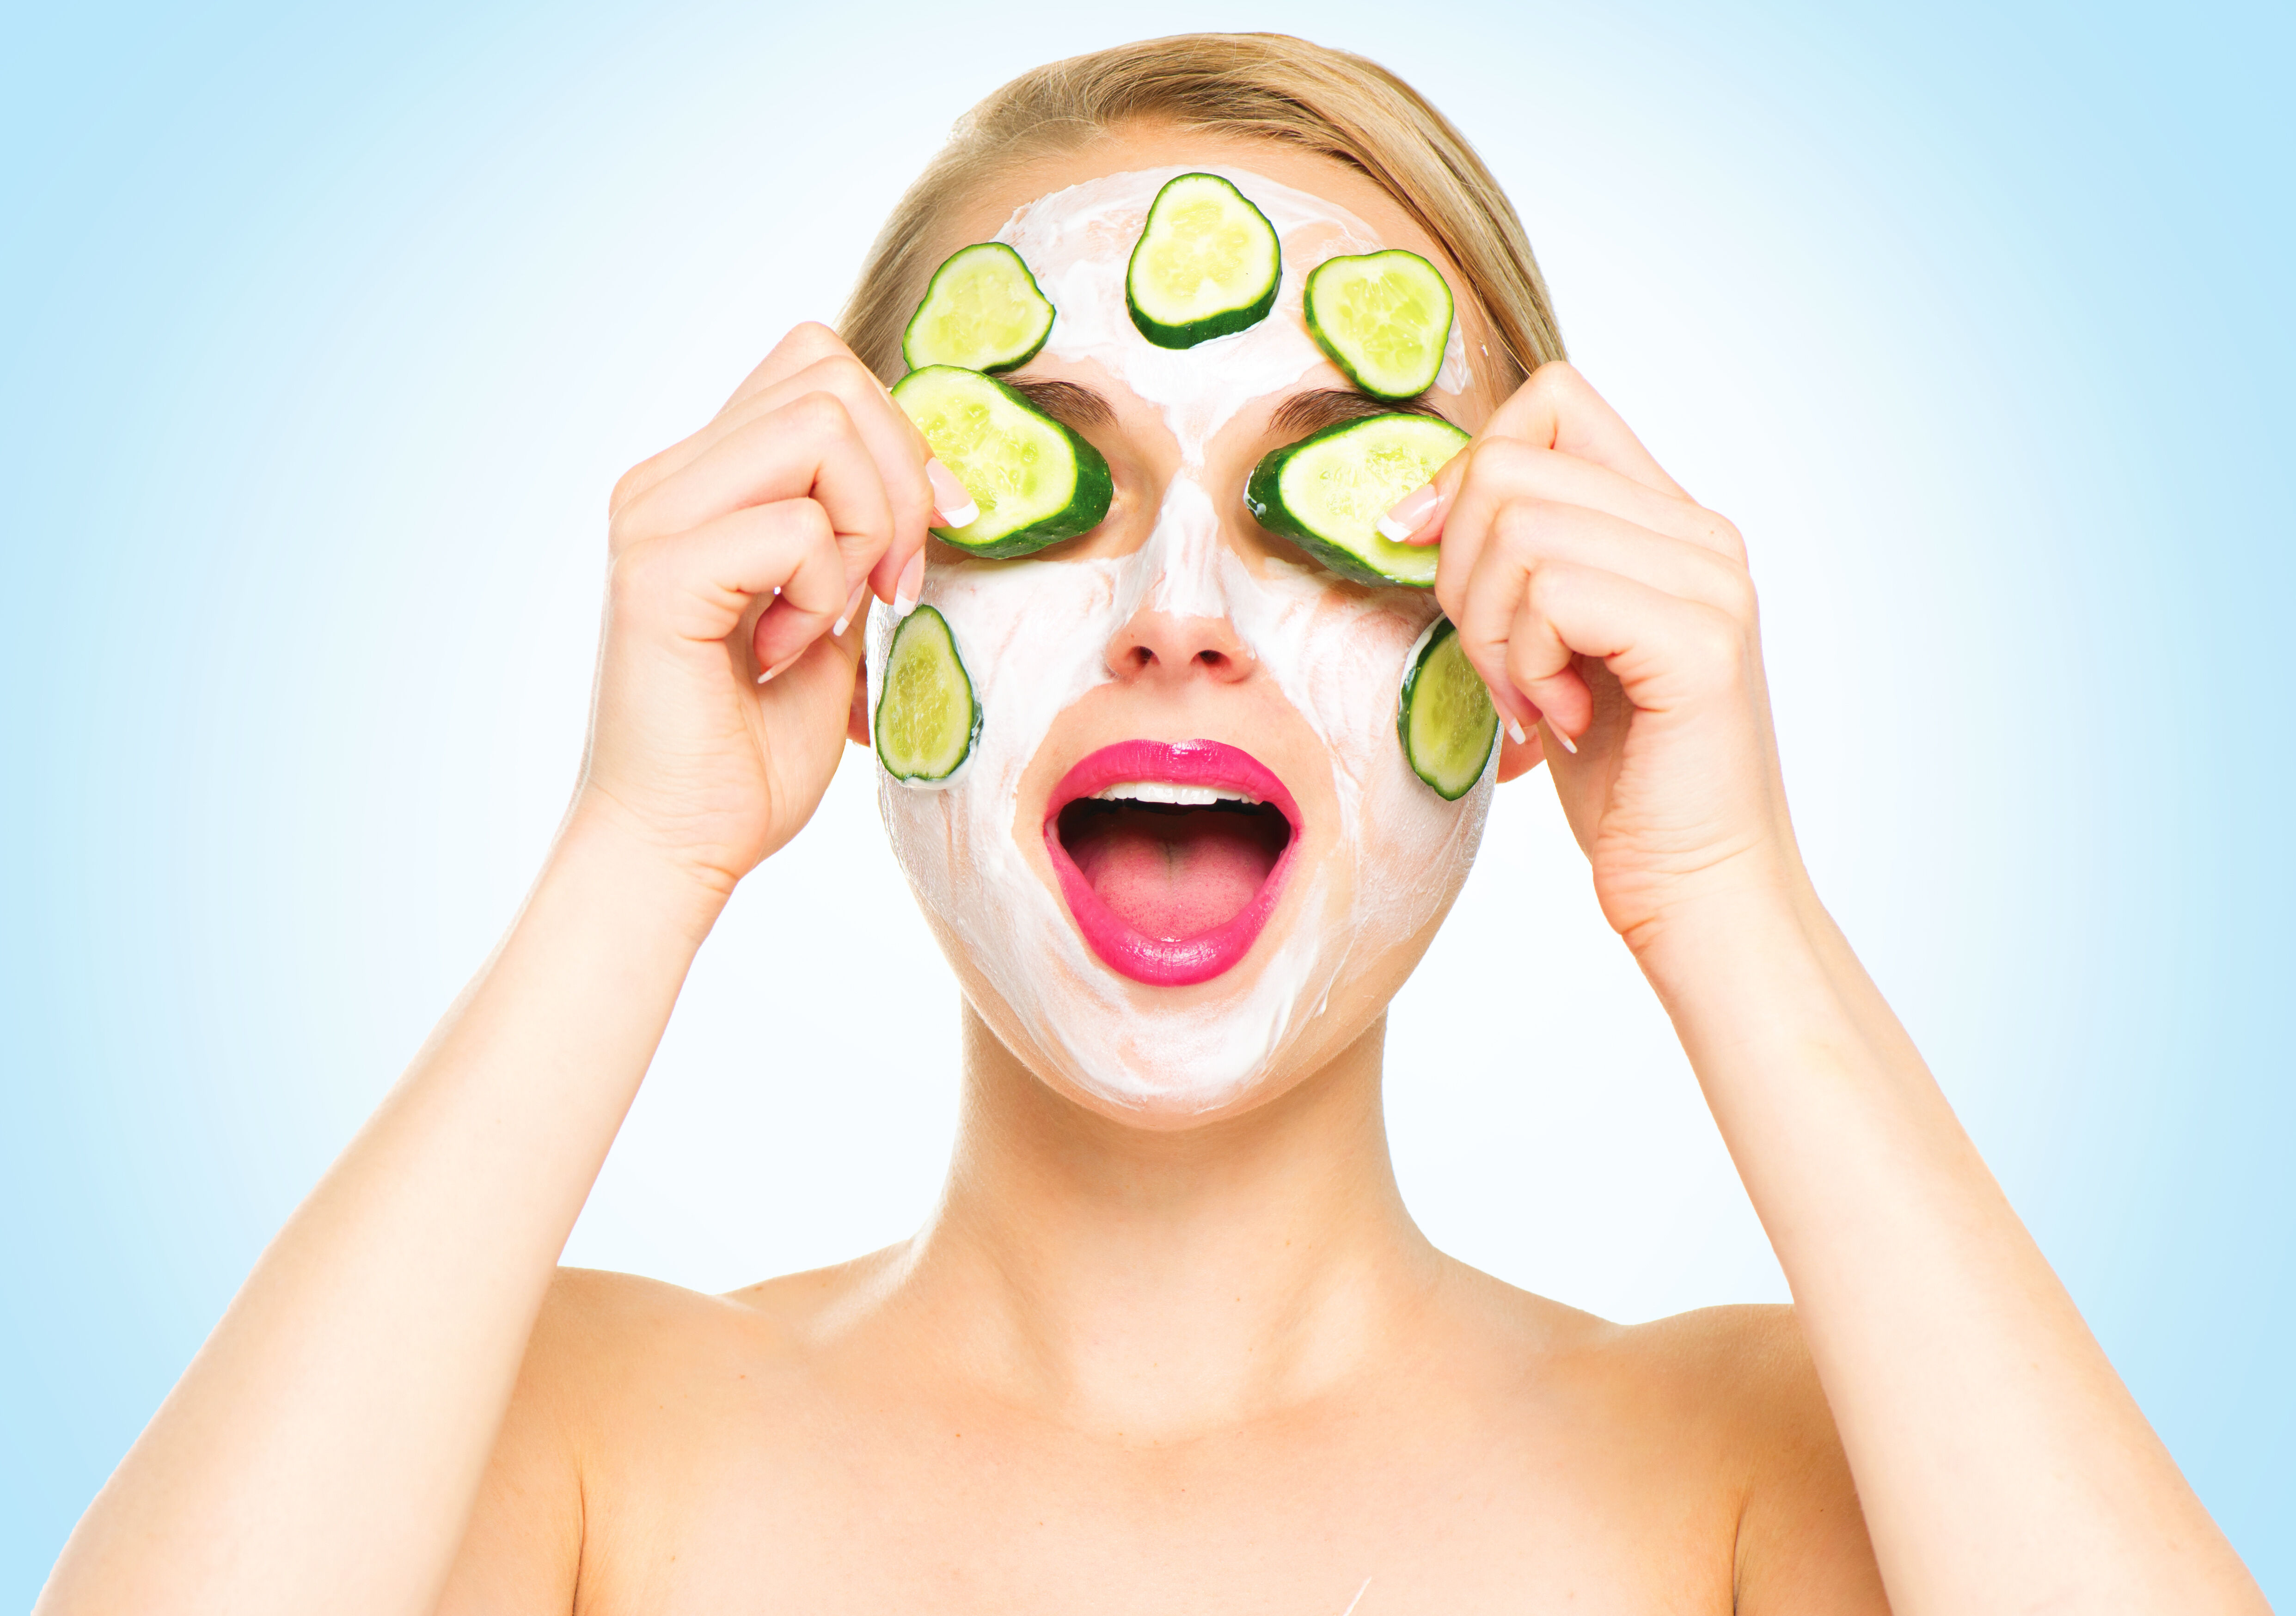 Girl with cucumbers in her eye